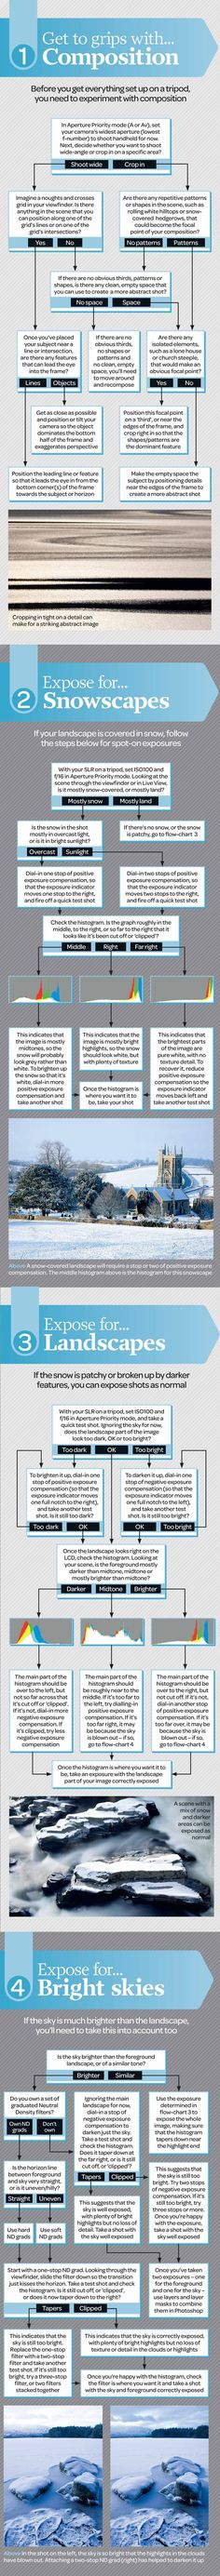 Winter landscape photography cheat sheet: how to compose and expose any scene #photography